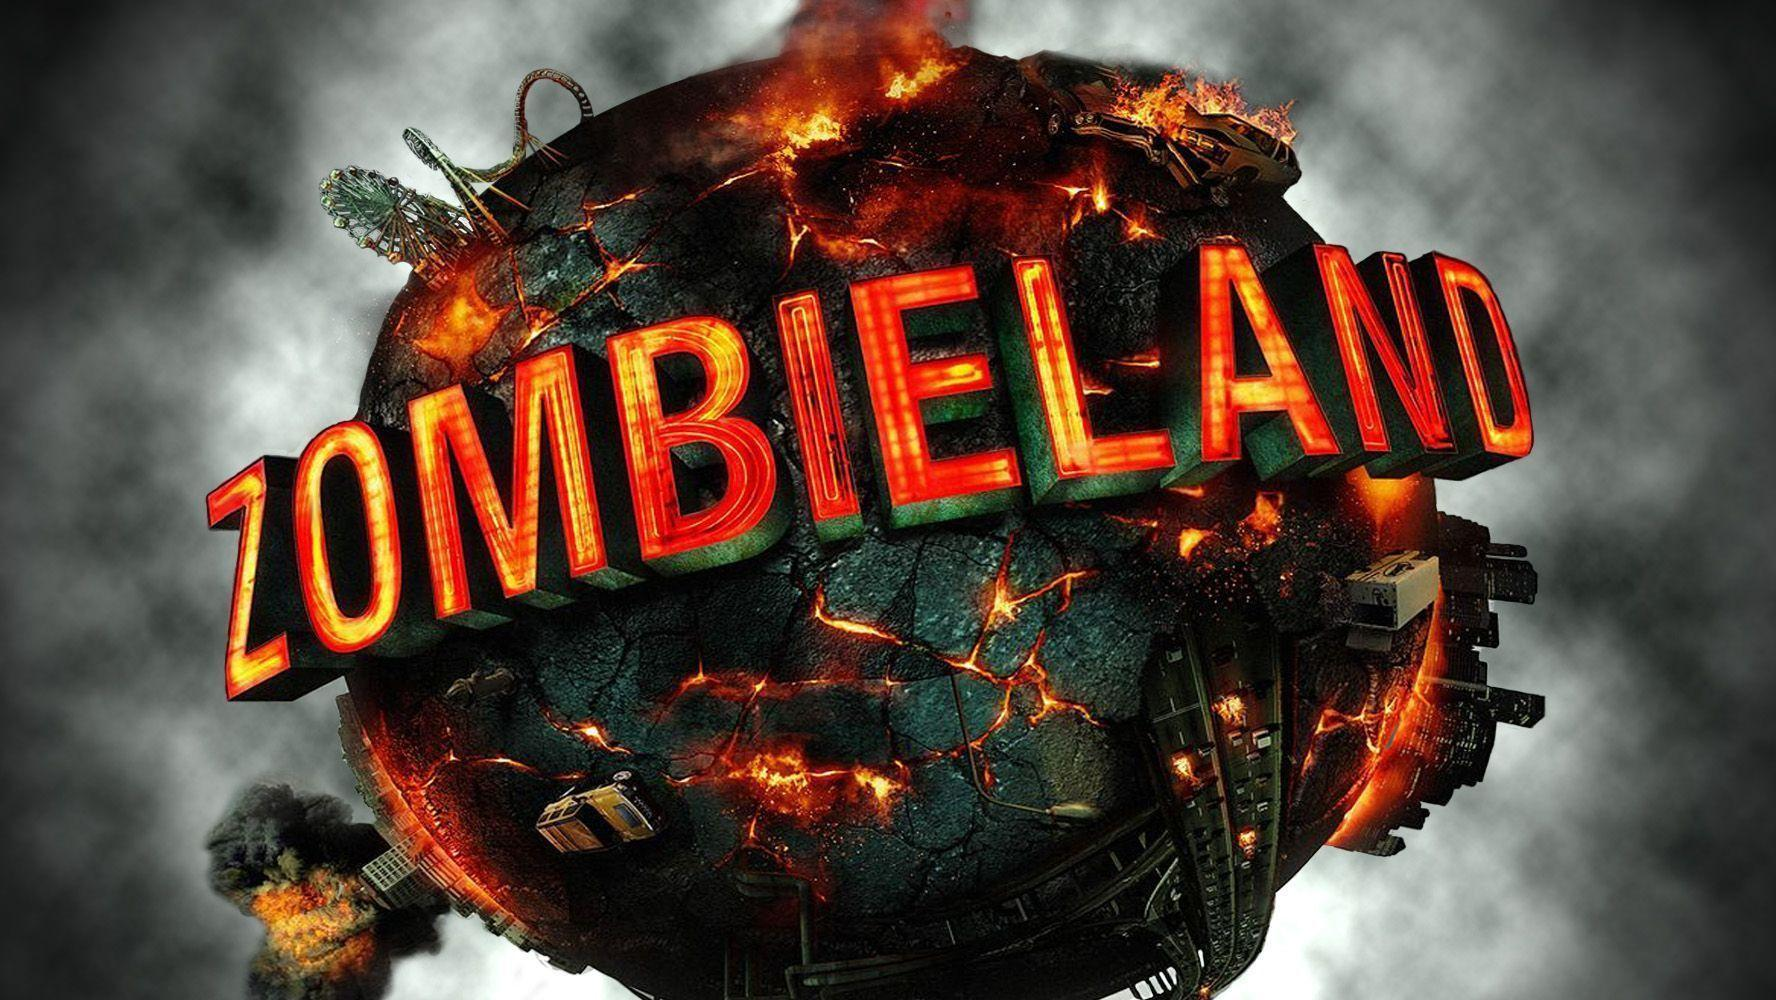 Geography Hd Wallpaper Zombieland Wallpapers Wallpaper Cave